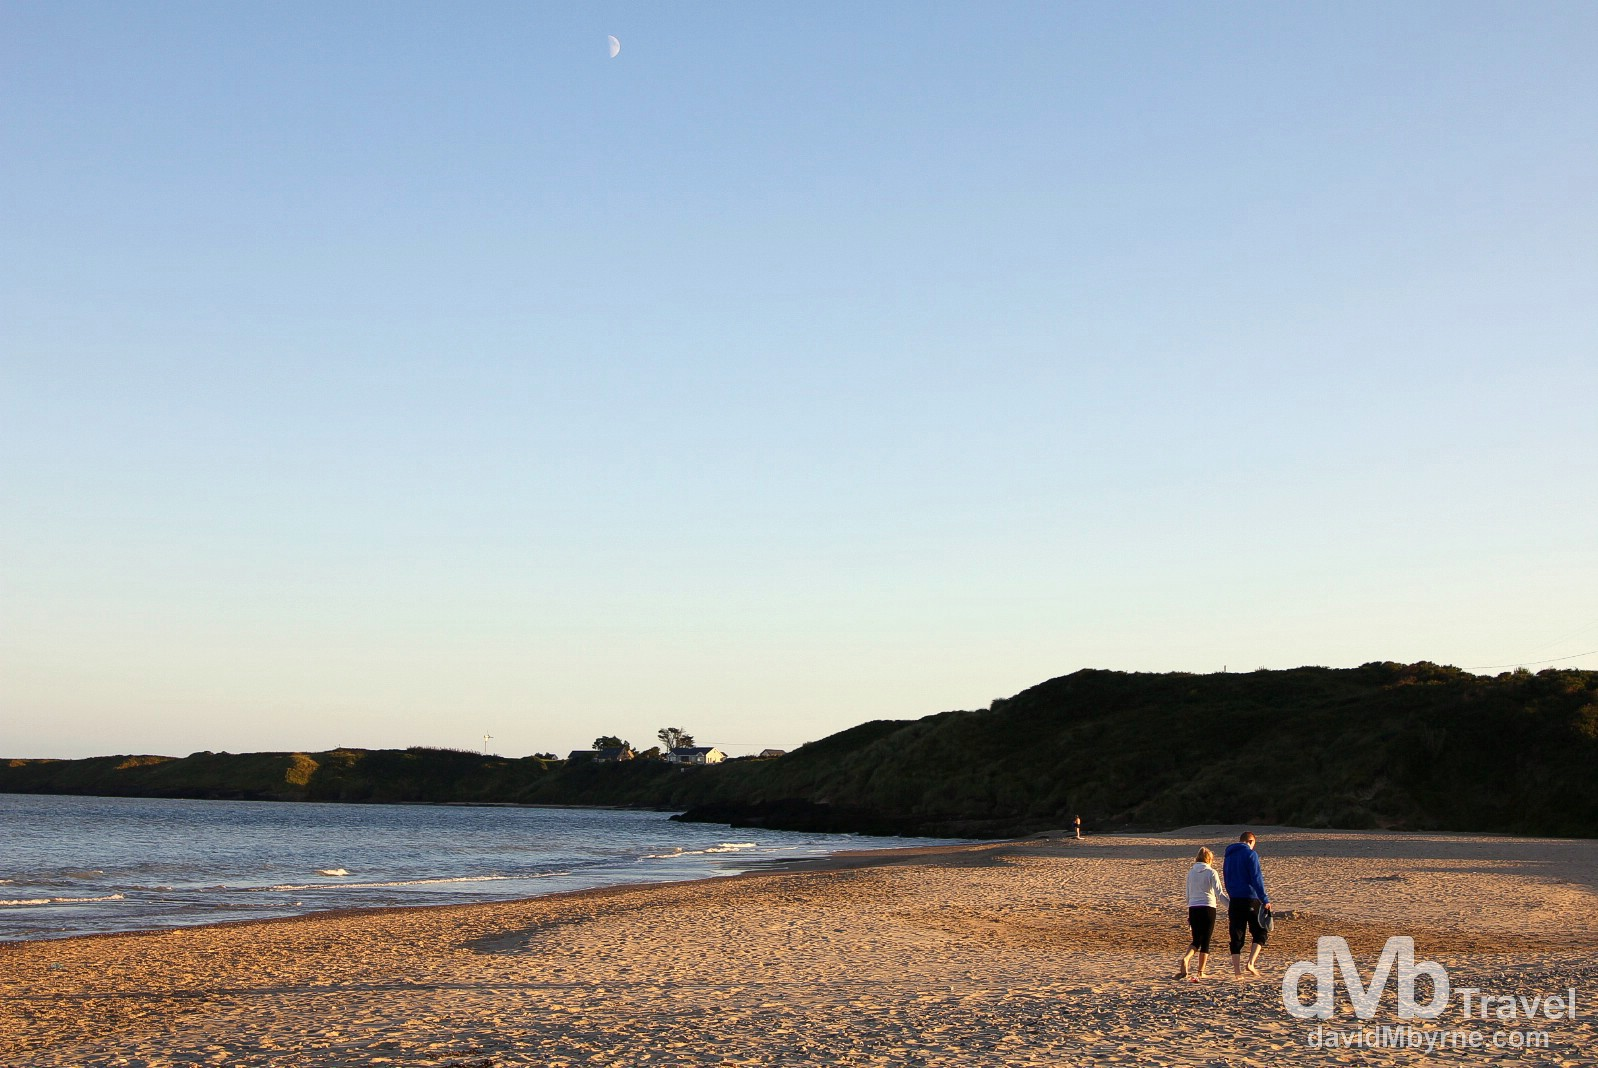 An evening stroll (& long shadows) on the beach at Brittas Bay, Co. Wicklow, Ireland. September 2, 2014.